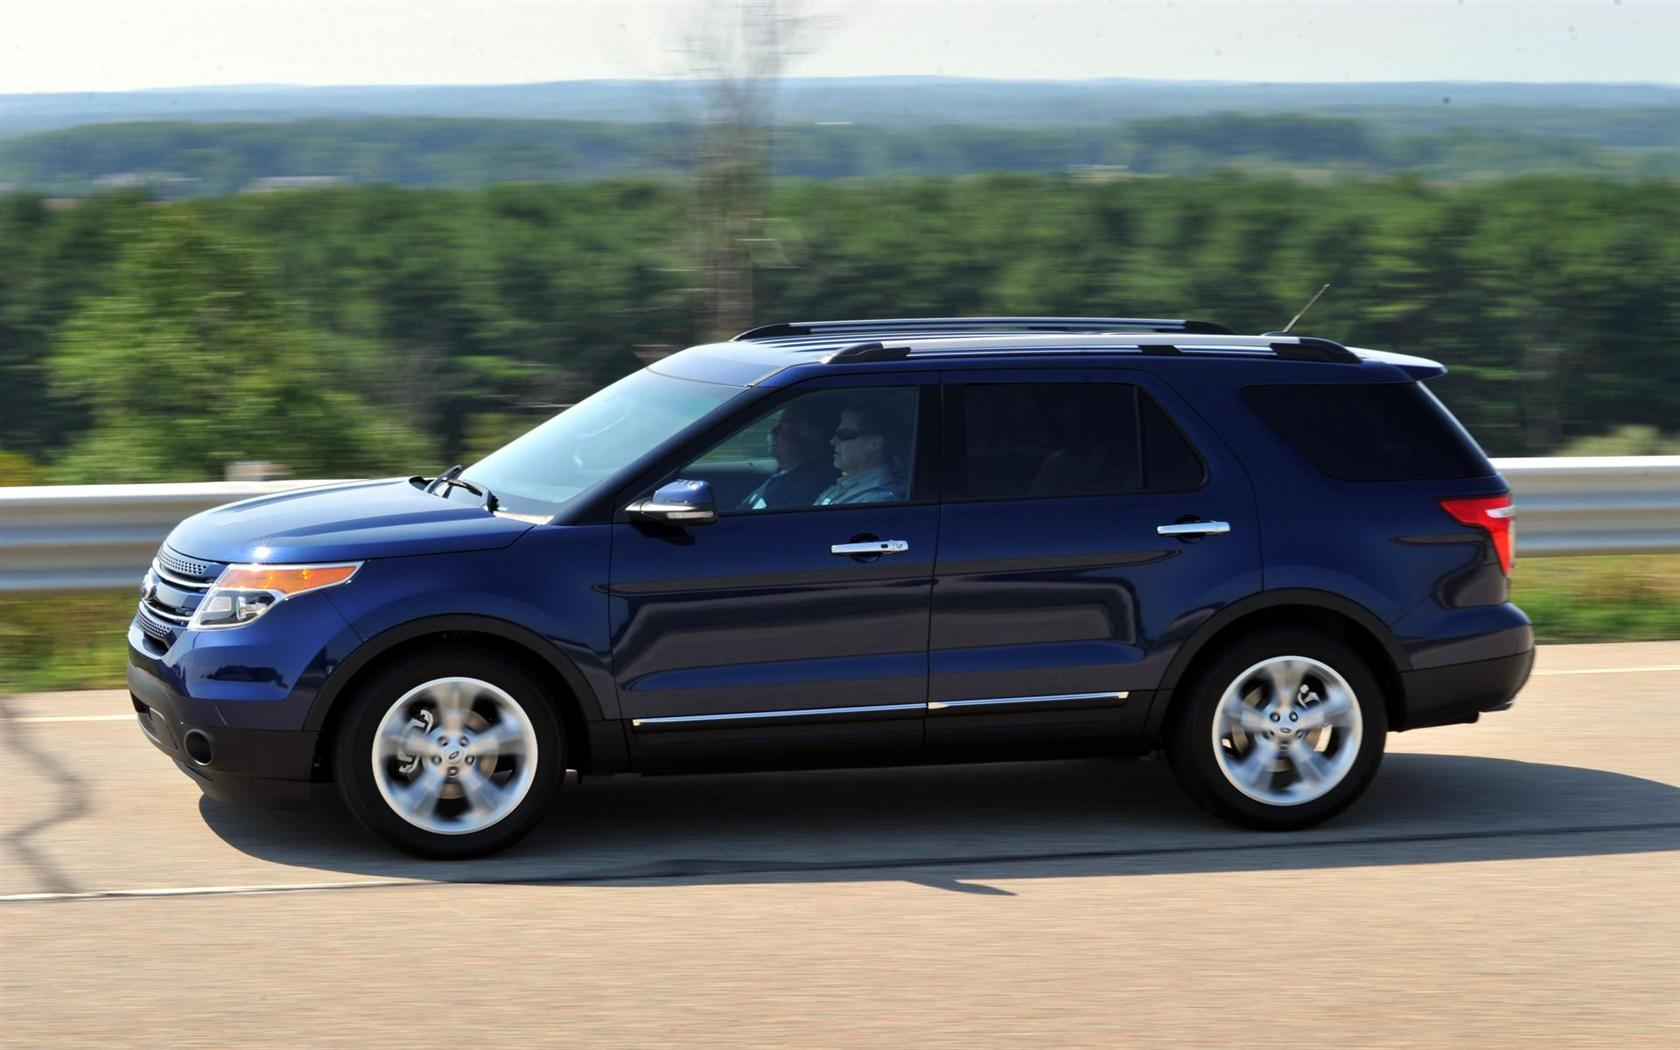 2012 ford explorer image - Ford Explorer 2012 Black